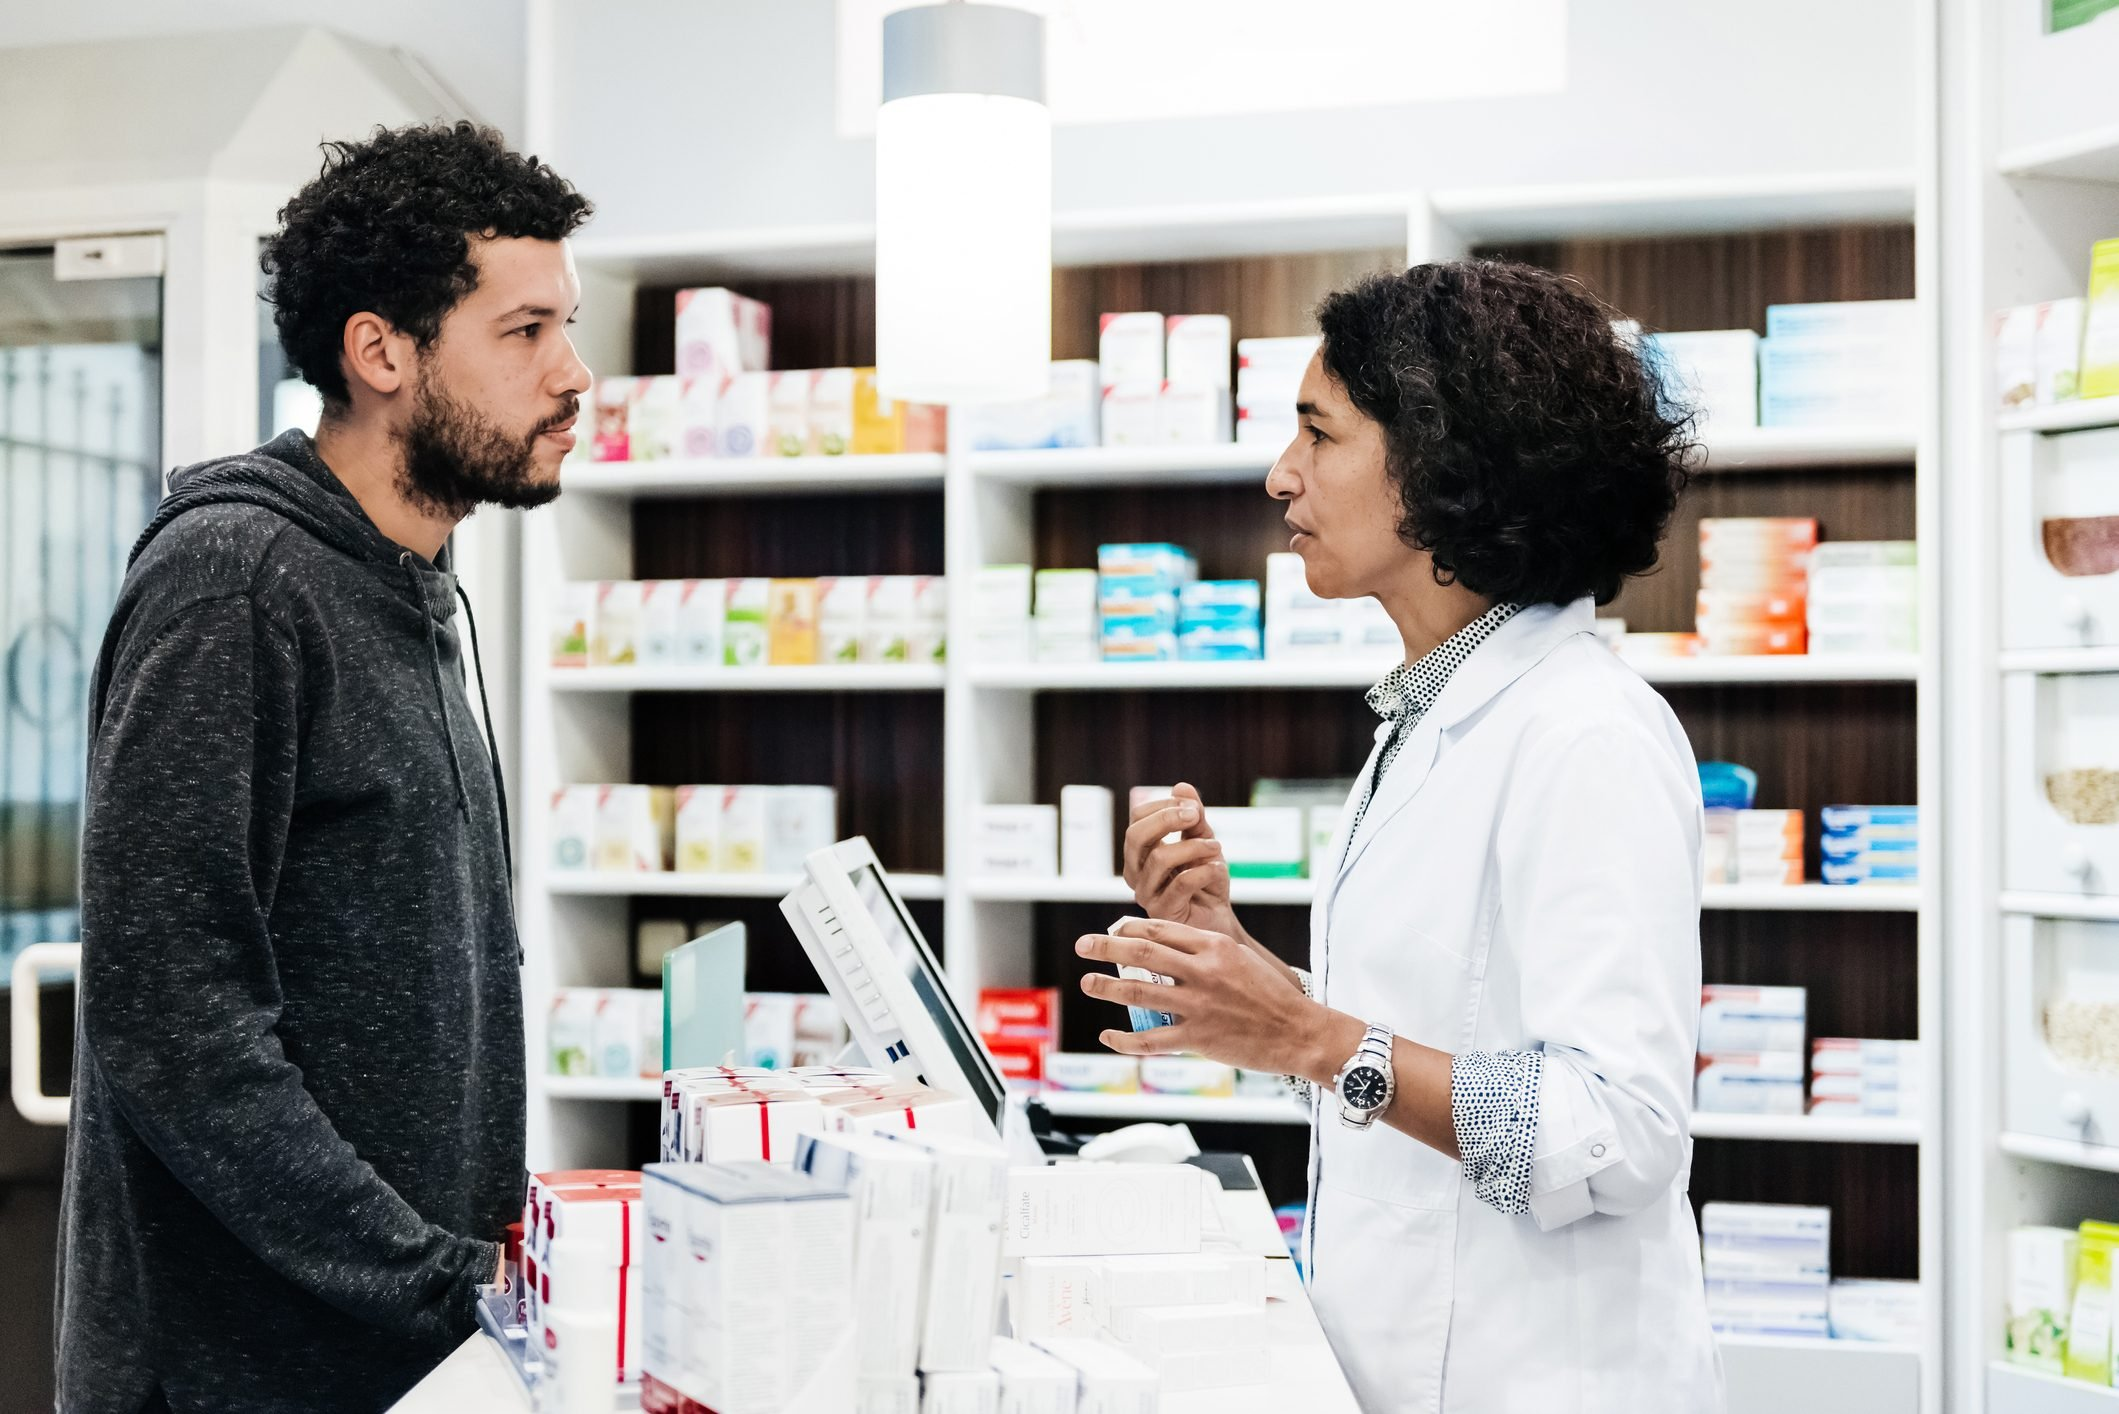 Pharmacist Assisiting Customer With Prescription Queries